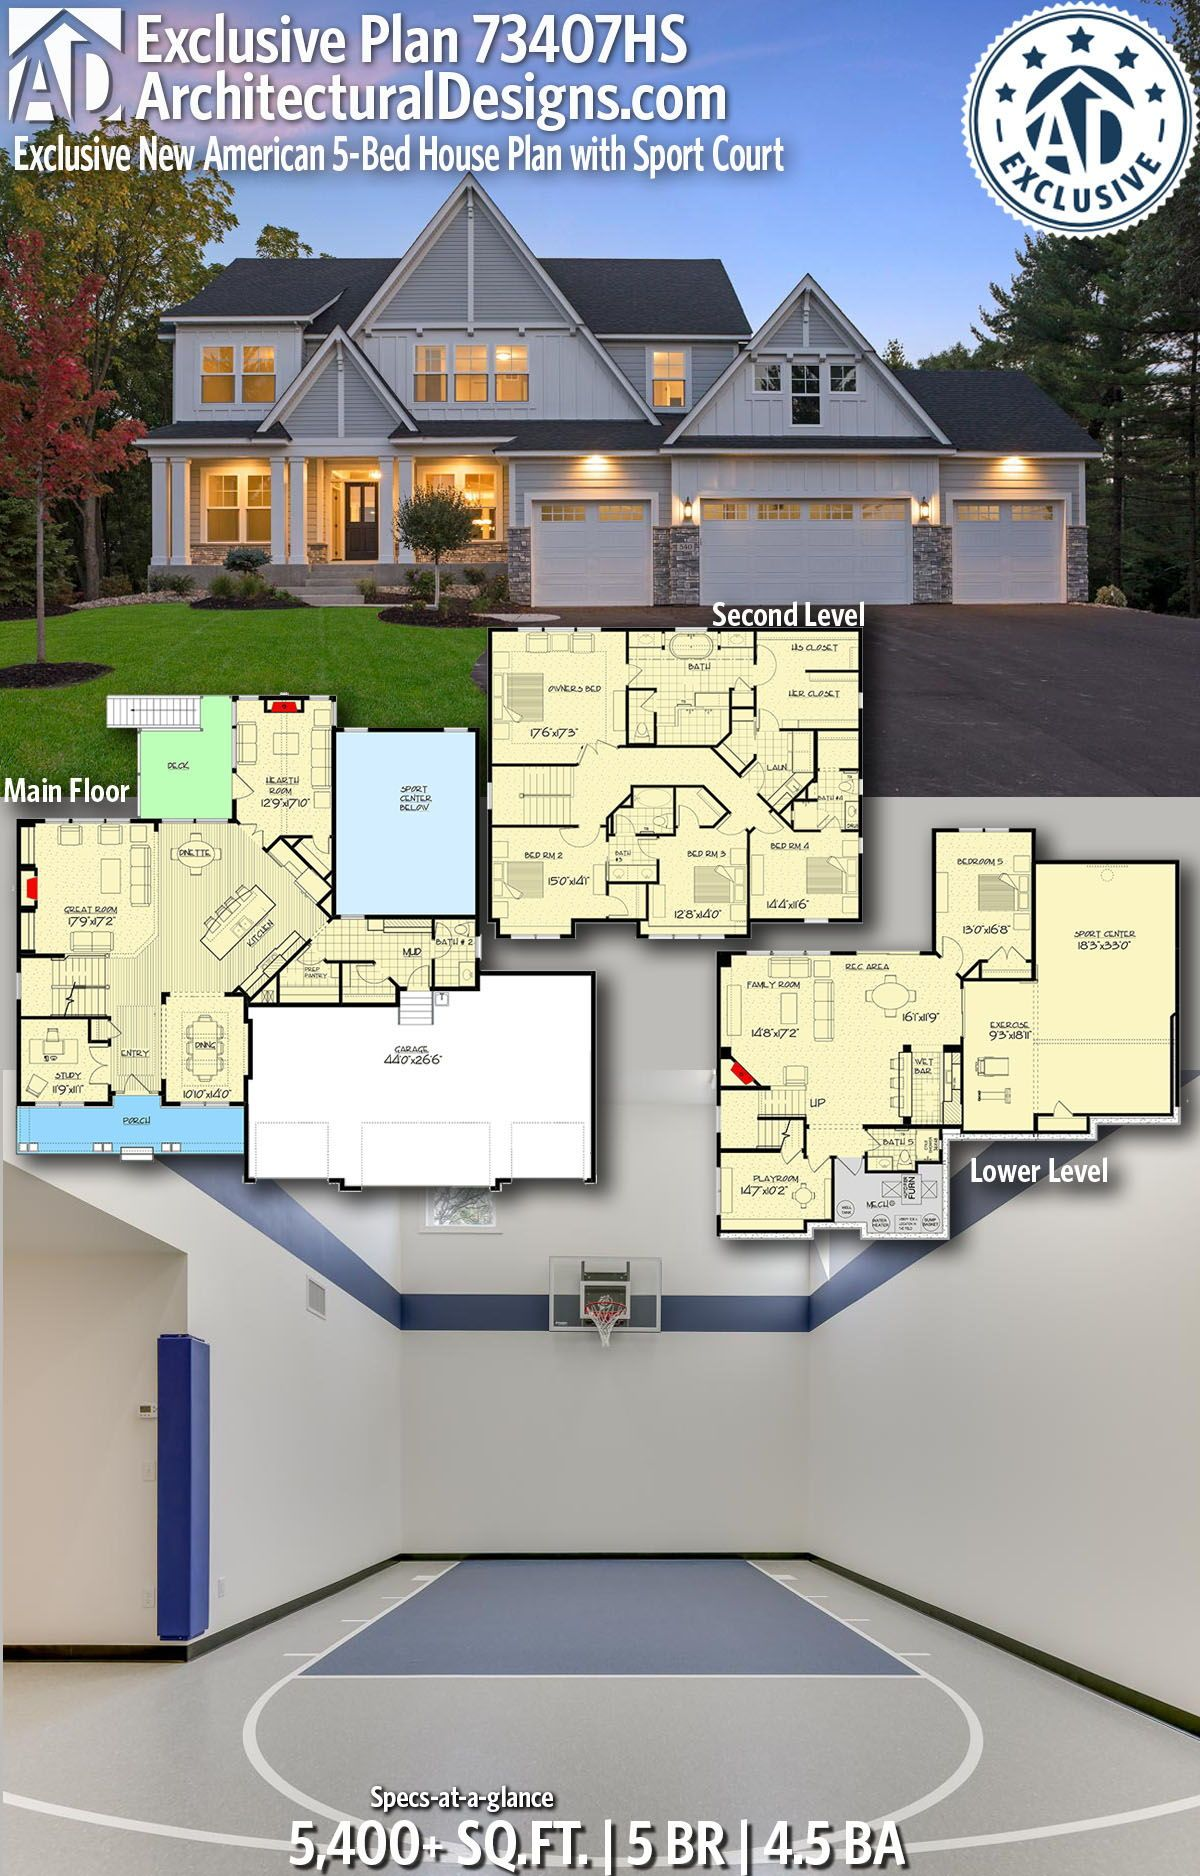 Pin By Erik Bransdorfer On House Plans House Plans Craftsman House Plans Dream House Plans